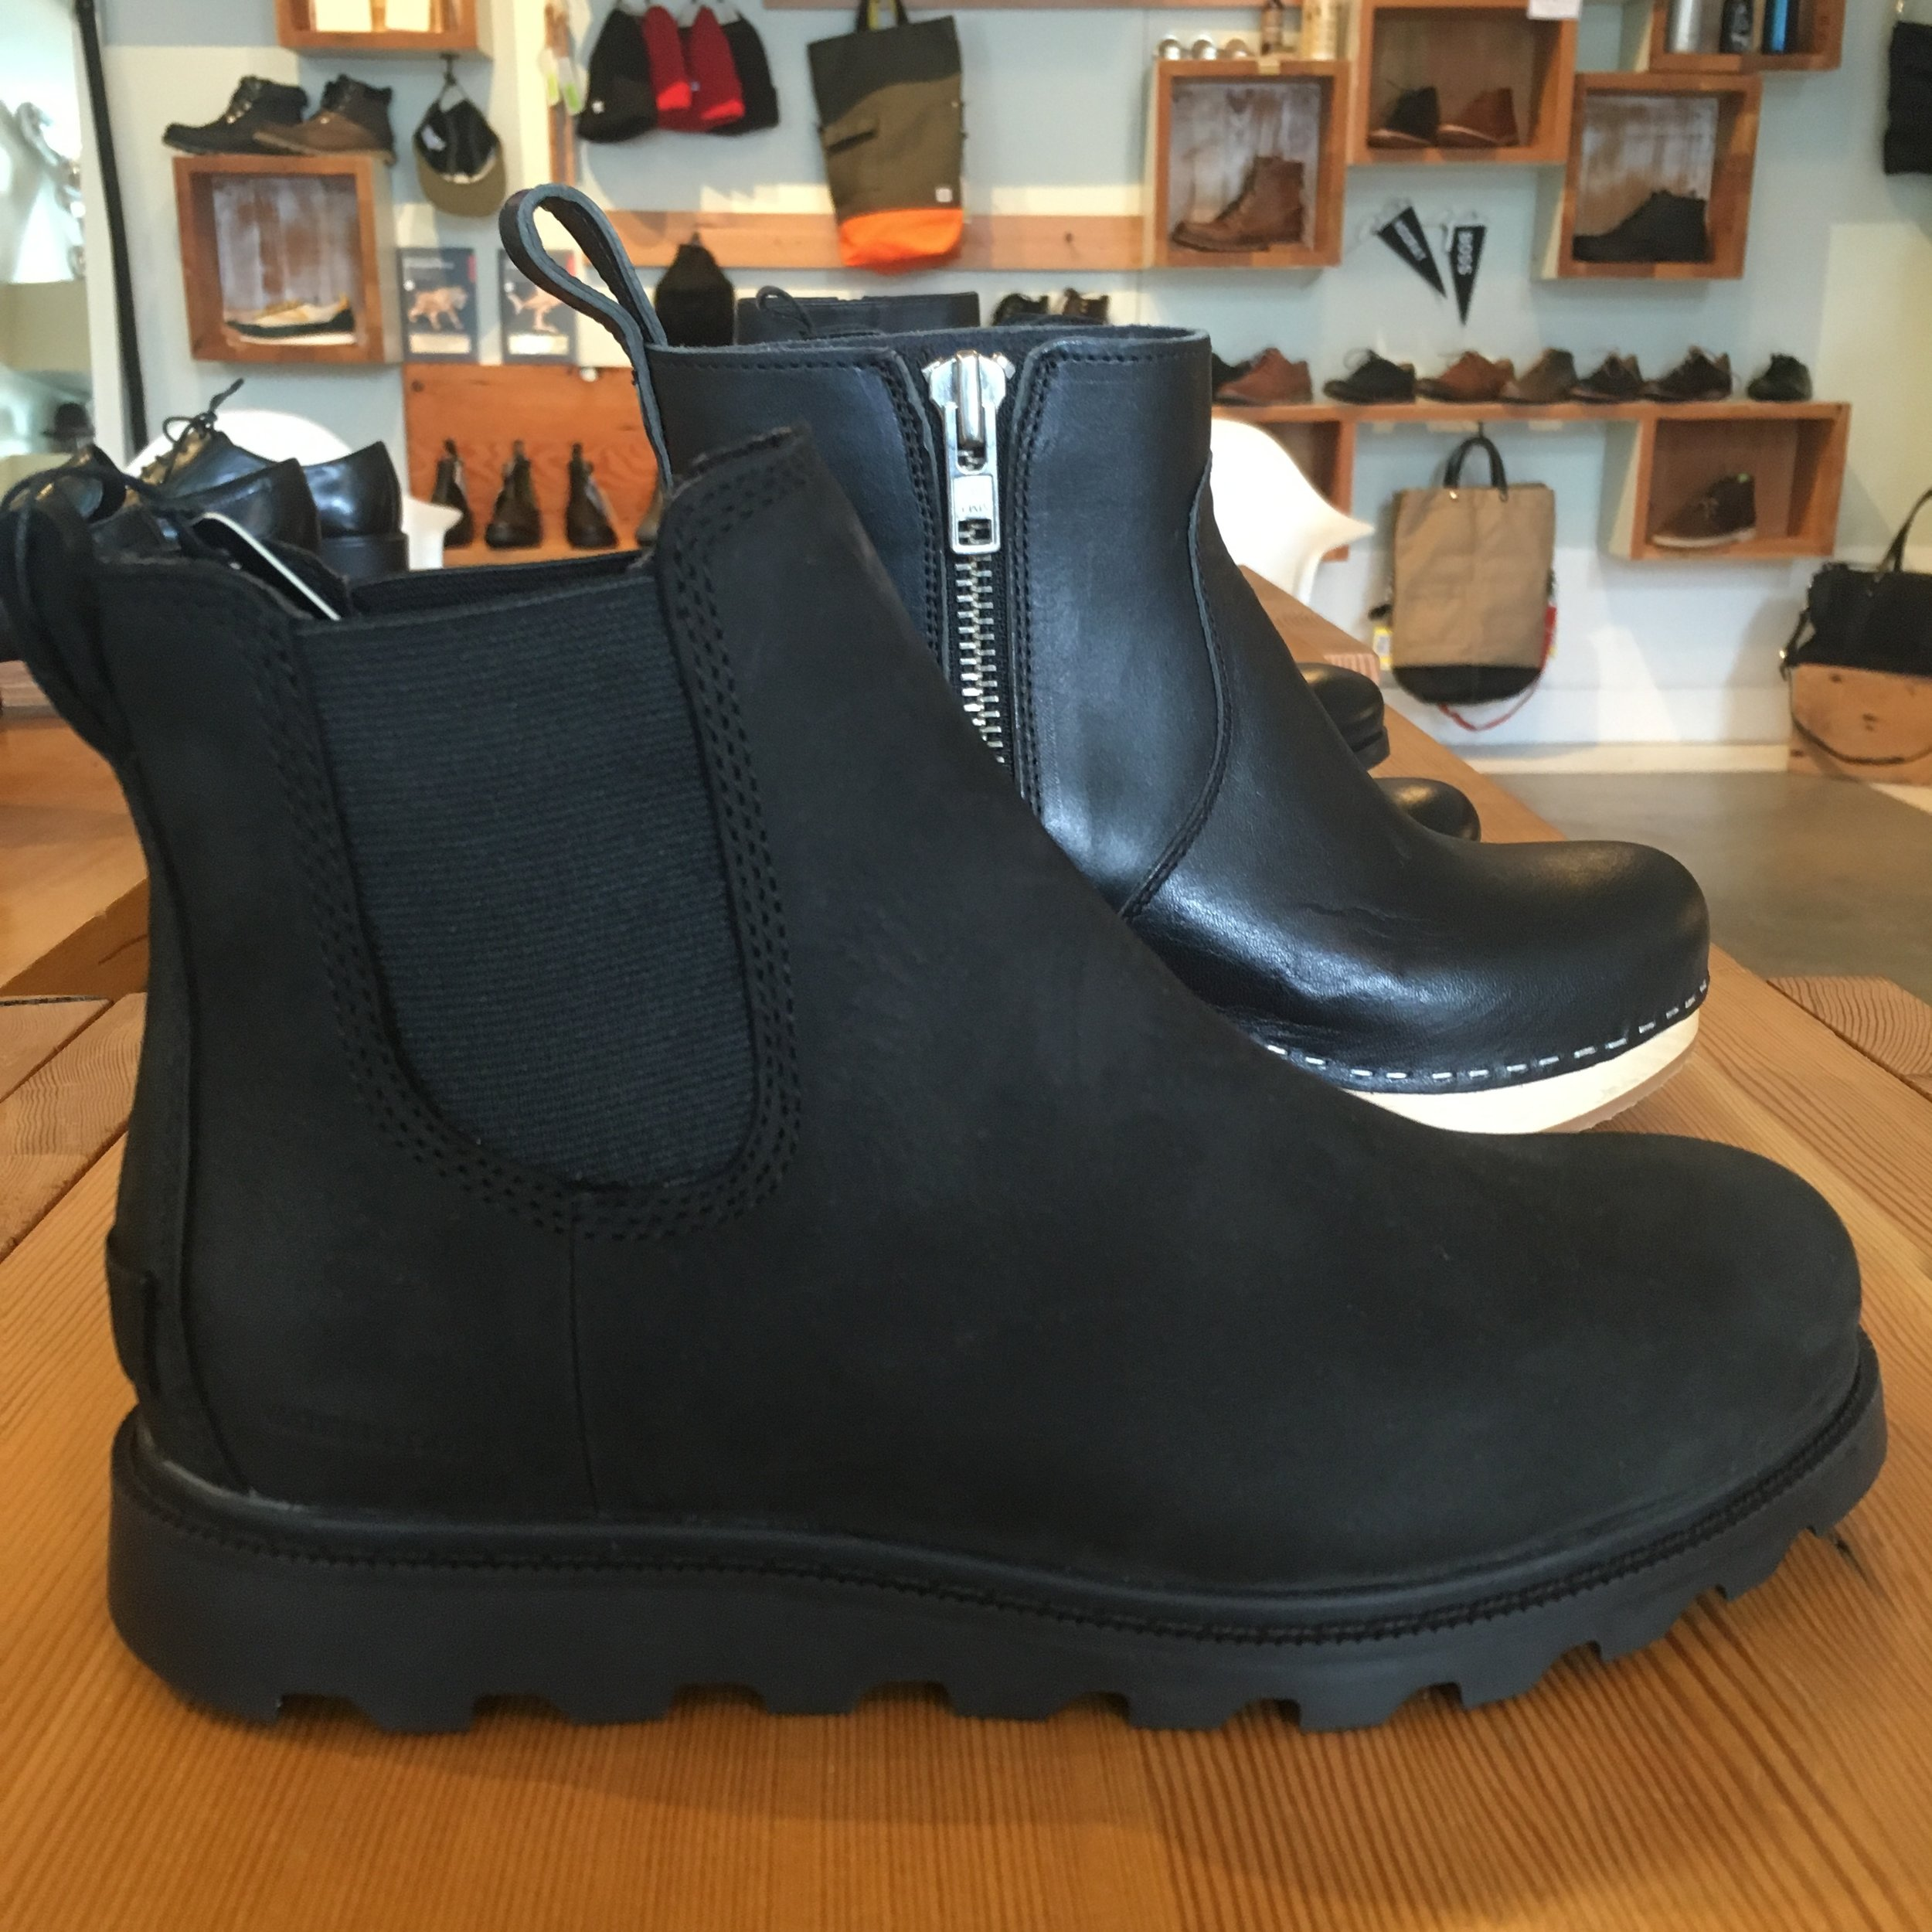 Sorel Ainsely Chelsea Boot, in black (and waterproof!), $150.00